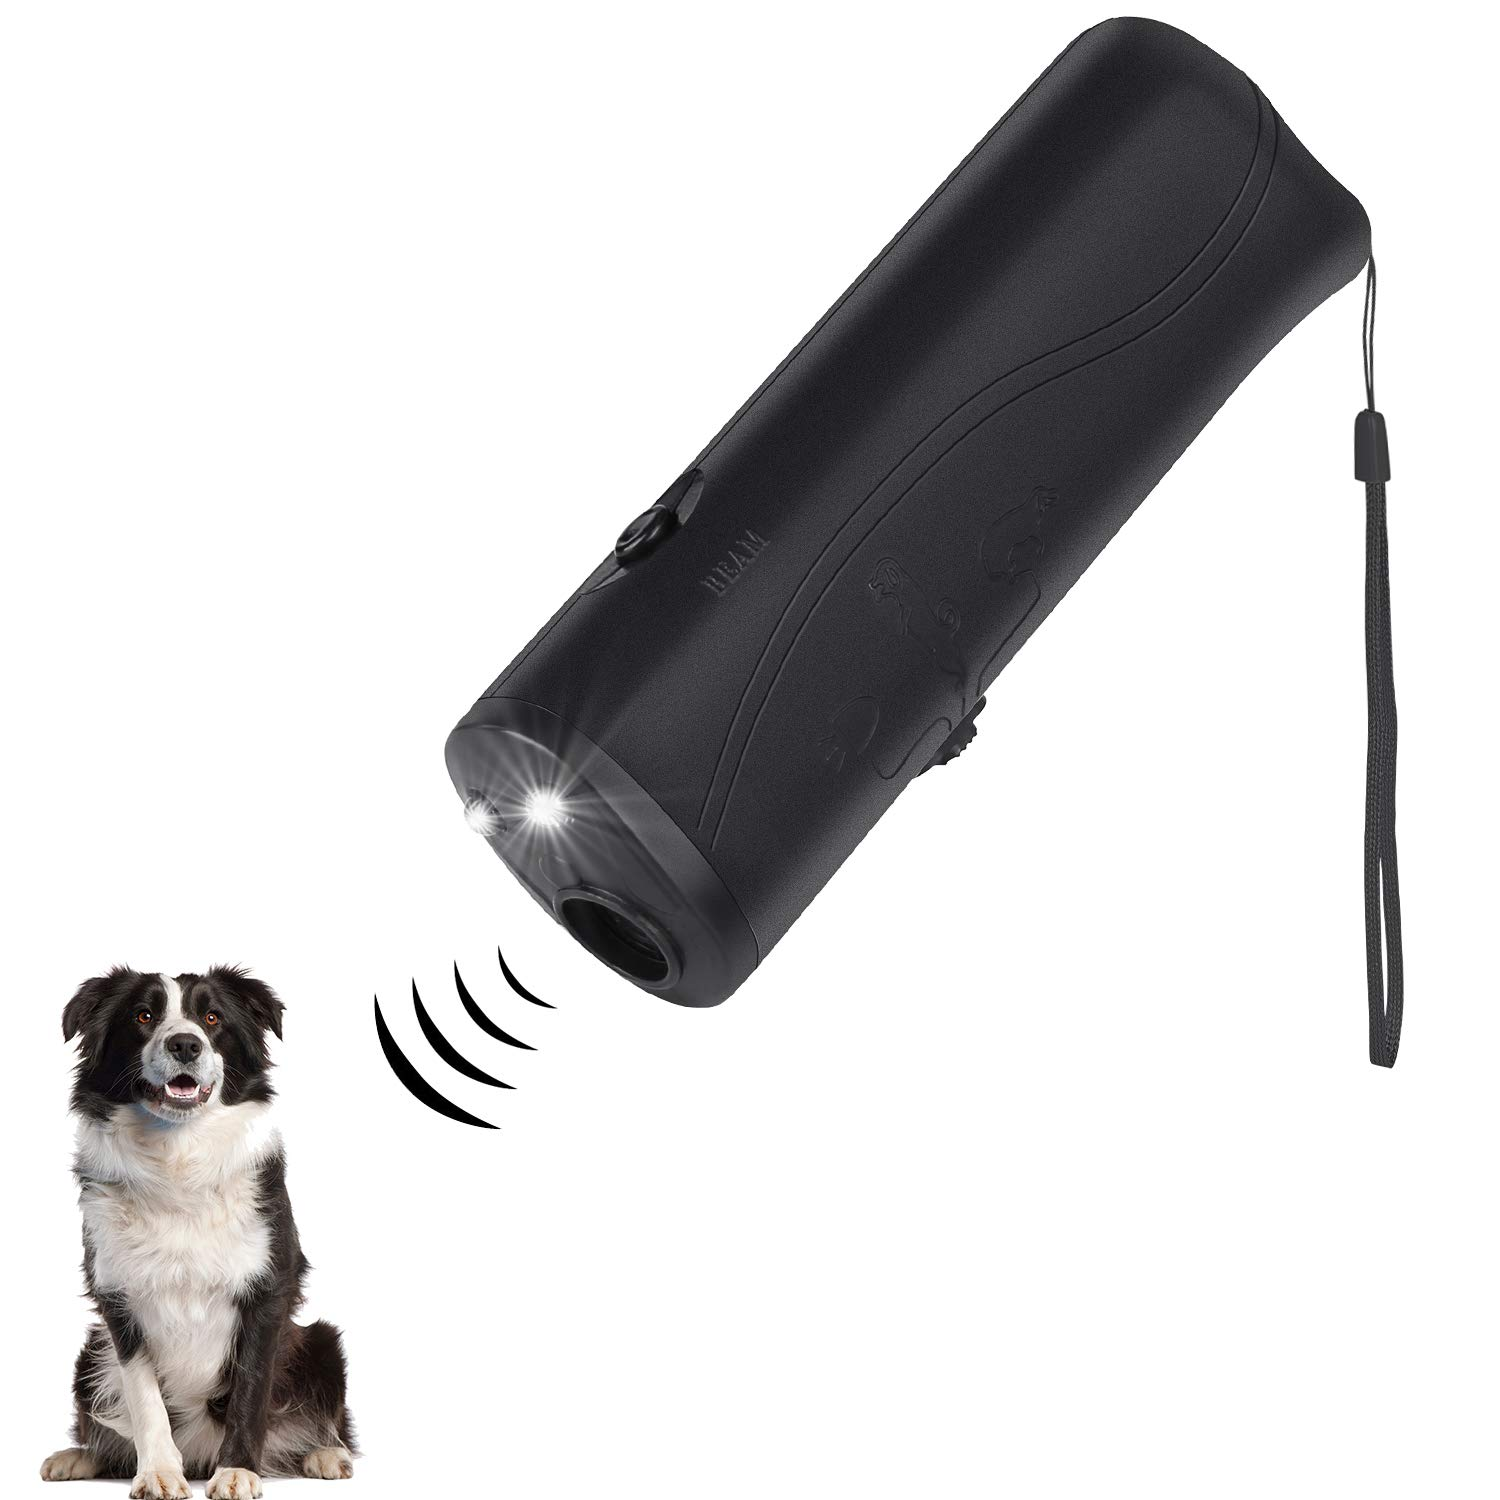 ONSON Ultrasonic Dog Repeller Trainer Device 3 in 1 LED Pet Anti Barking Stop Bark Handheld